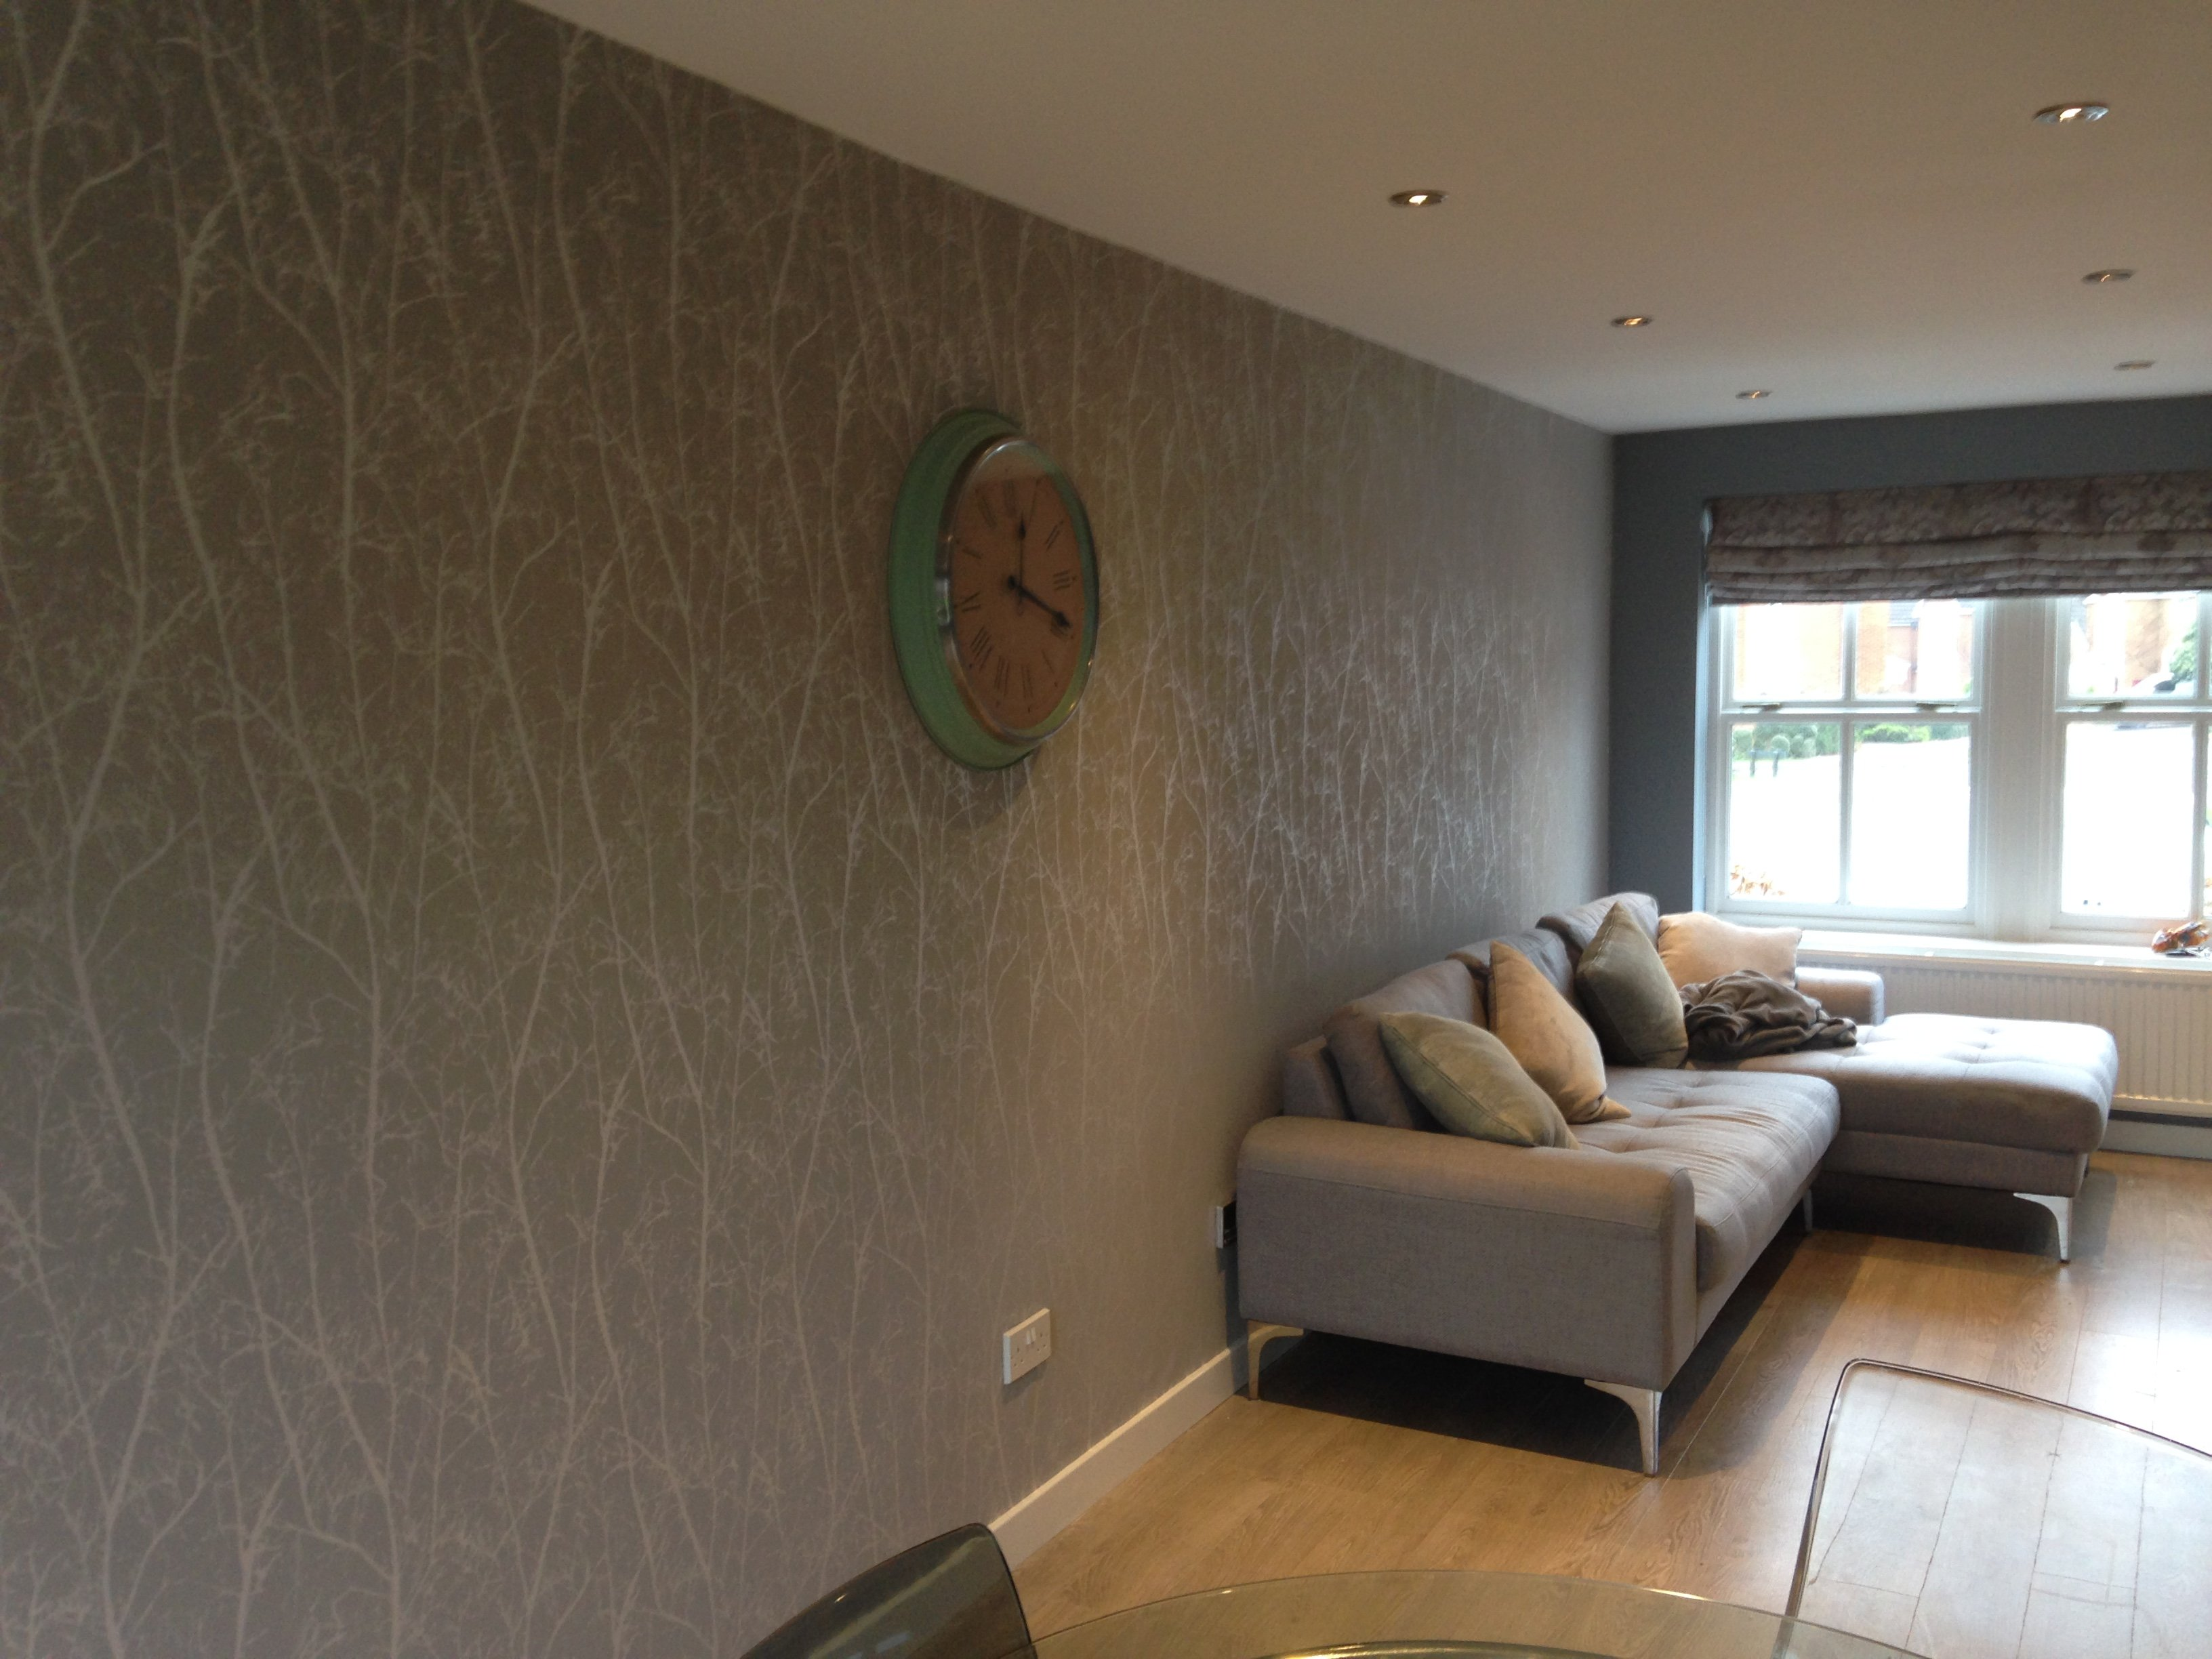 wallpapering, decorator, decorating, amersham